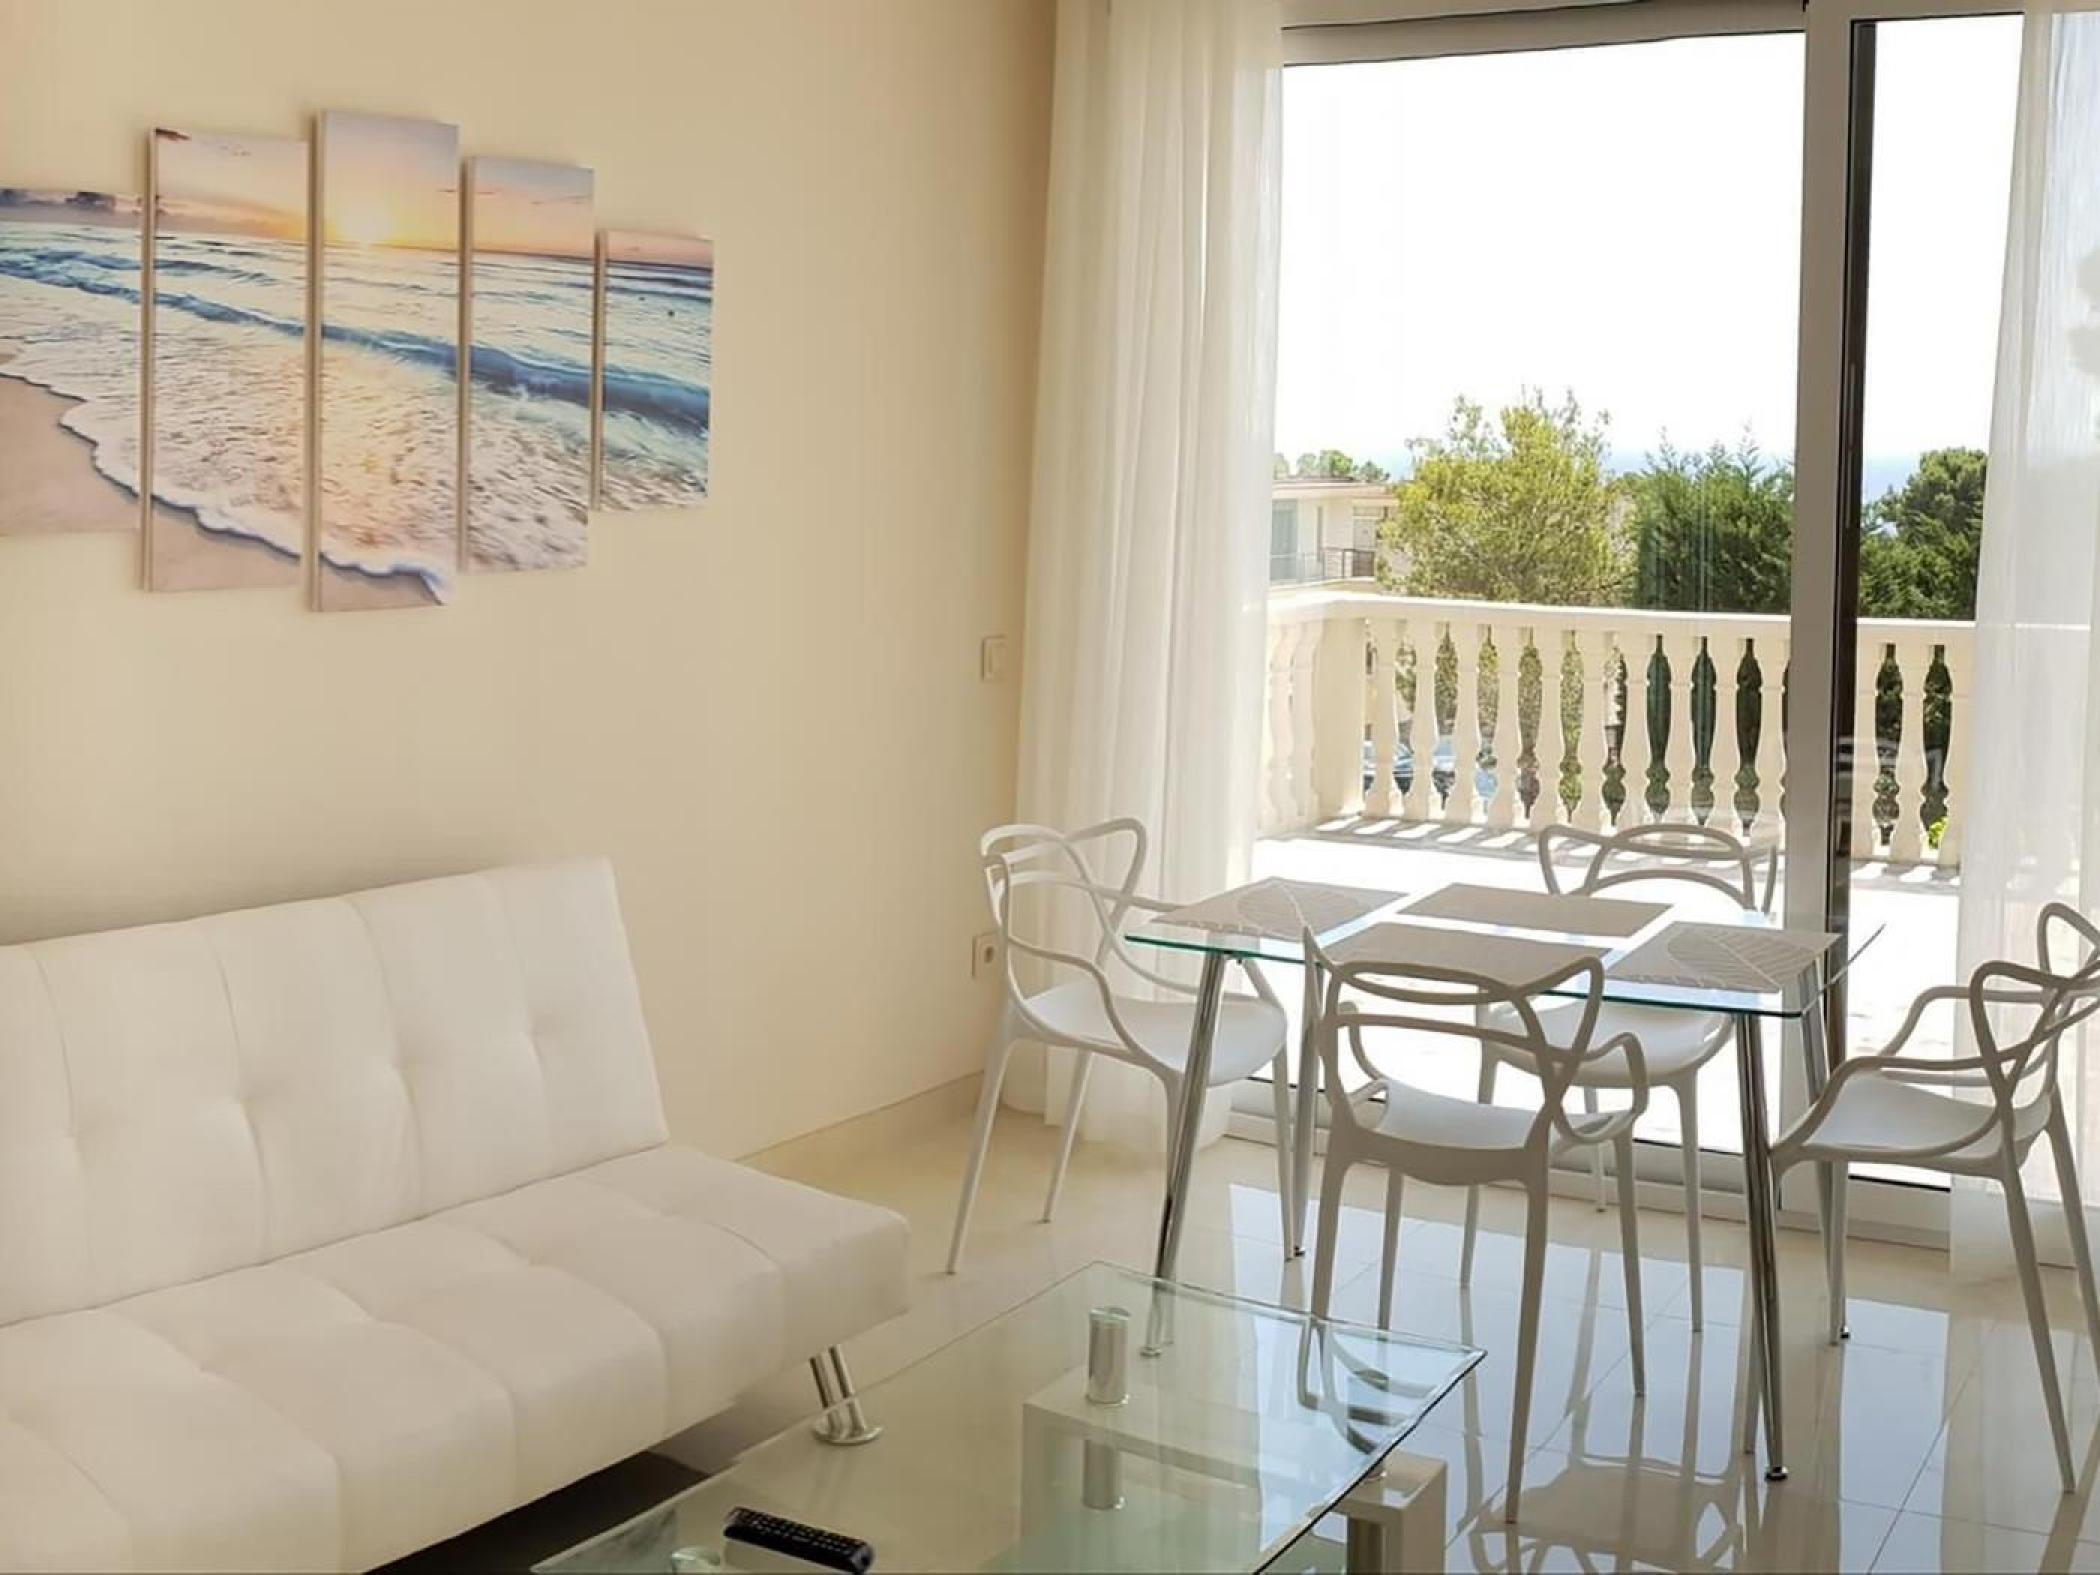 Rent Villa with Swimming pool in Platja d'Aro - Calma Holiday Villas jacuzzi 12 - 5